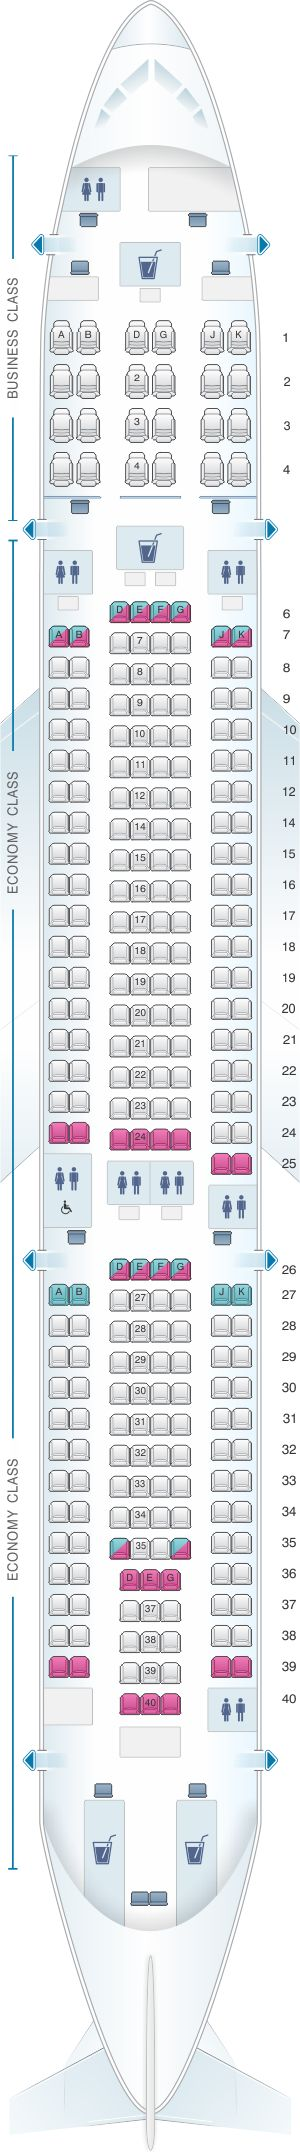 Best Airbus A Seating Ideas On Pinterest Commercial - Us airways seating map